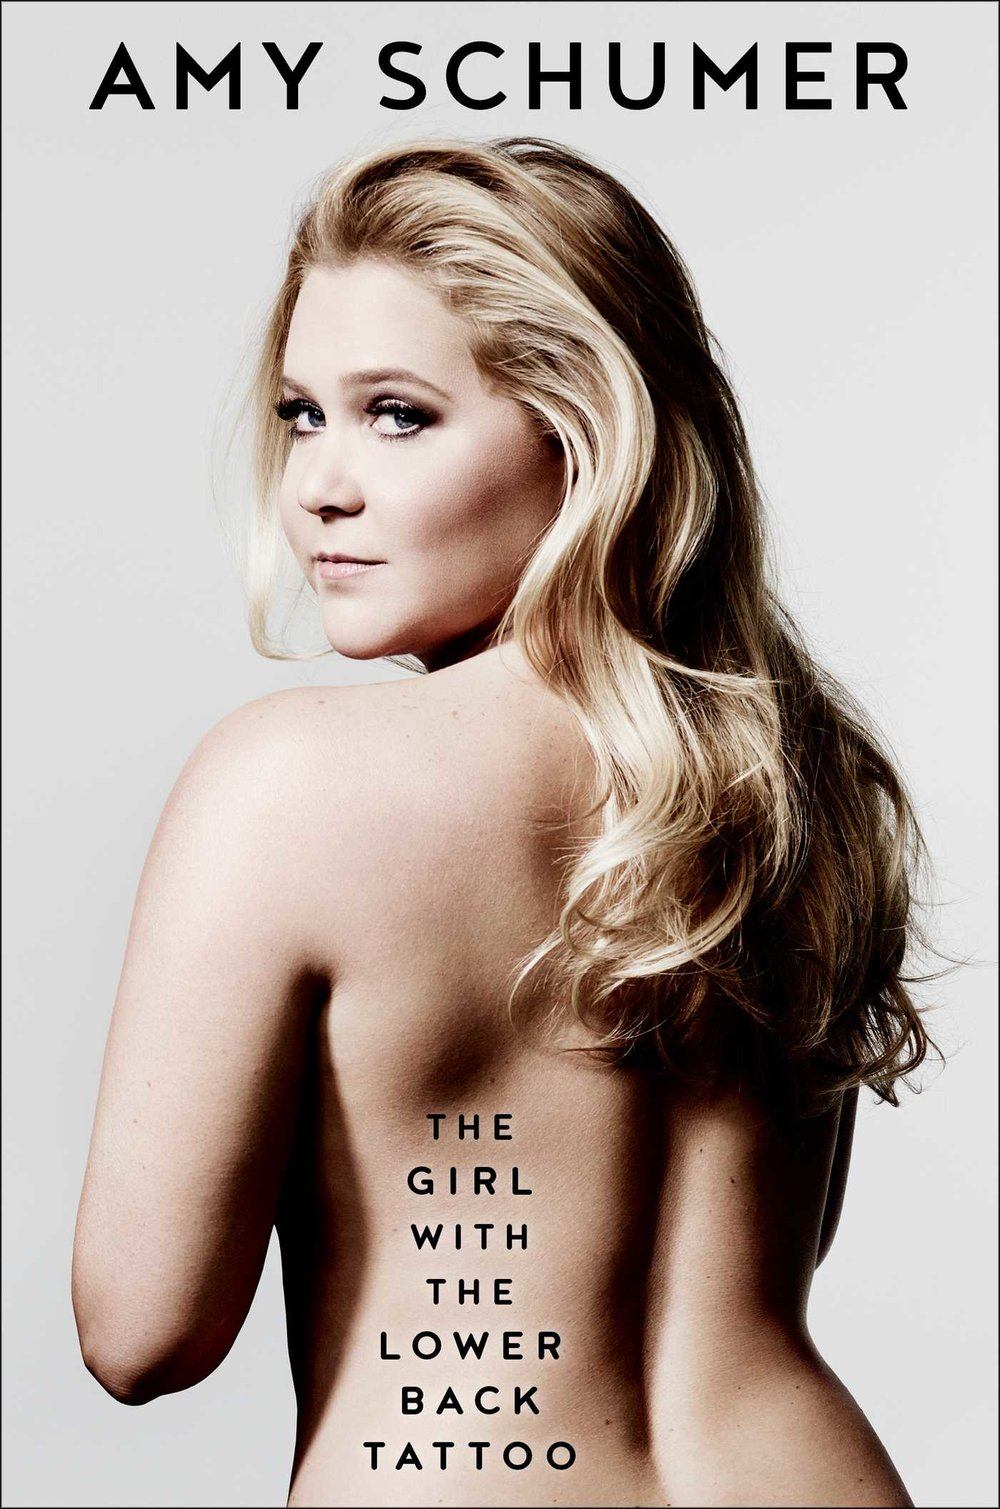 the-girl-with-the-lower-back-tattoo-9781501139888_hr-1.jpg